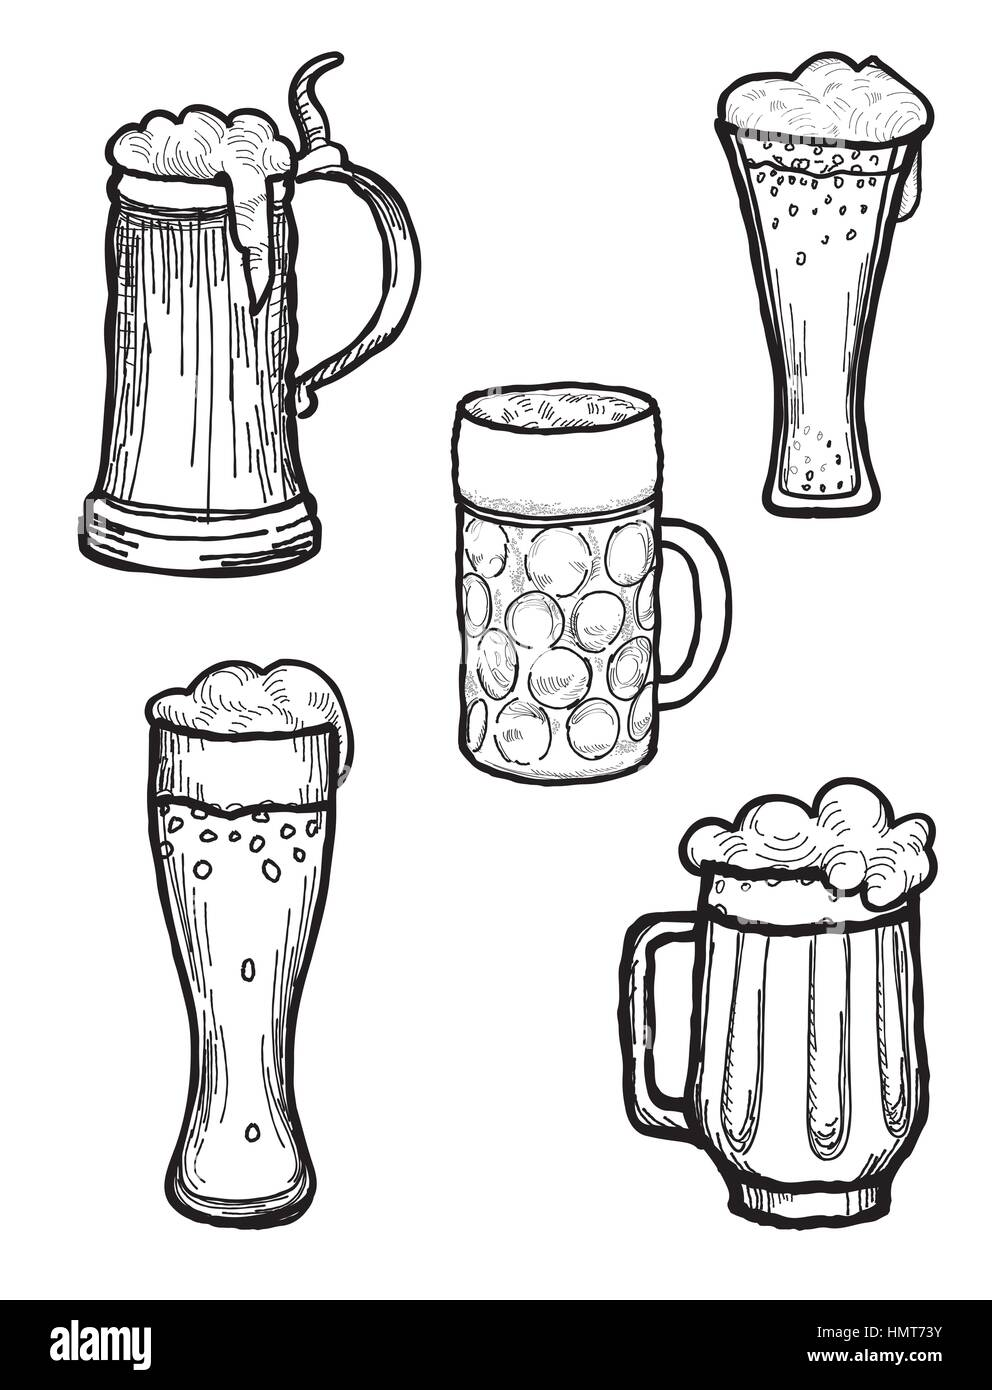 Beer Ware Set In Retro Style Beer Mug And Beer Glass Silhouette Stock Vector Image Art Alamy